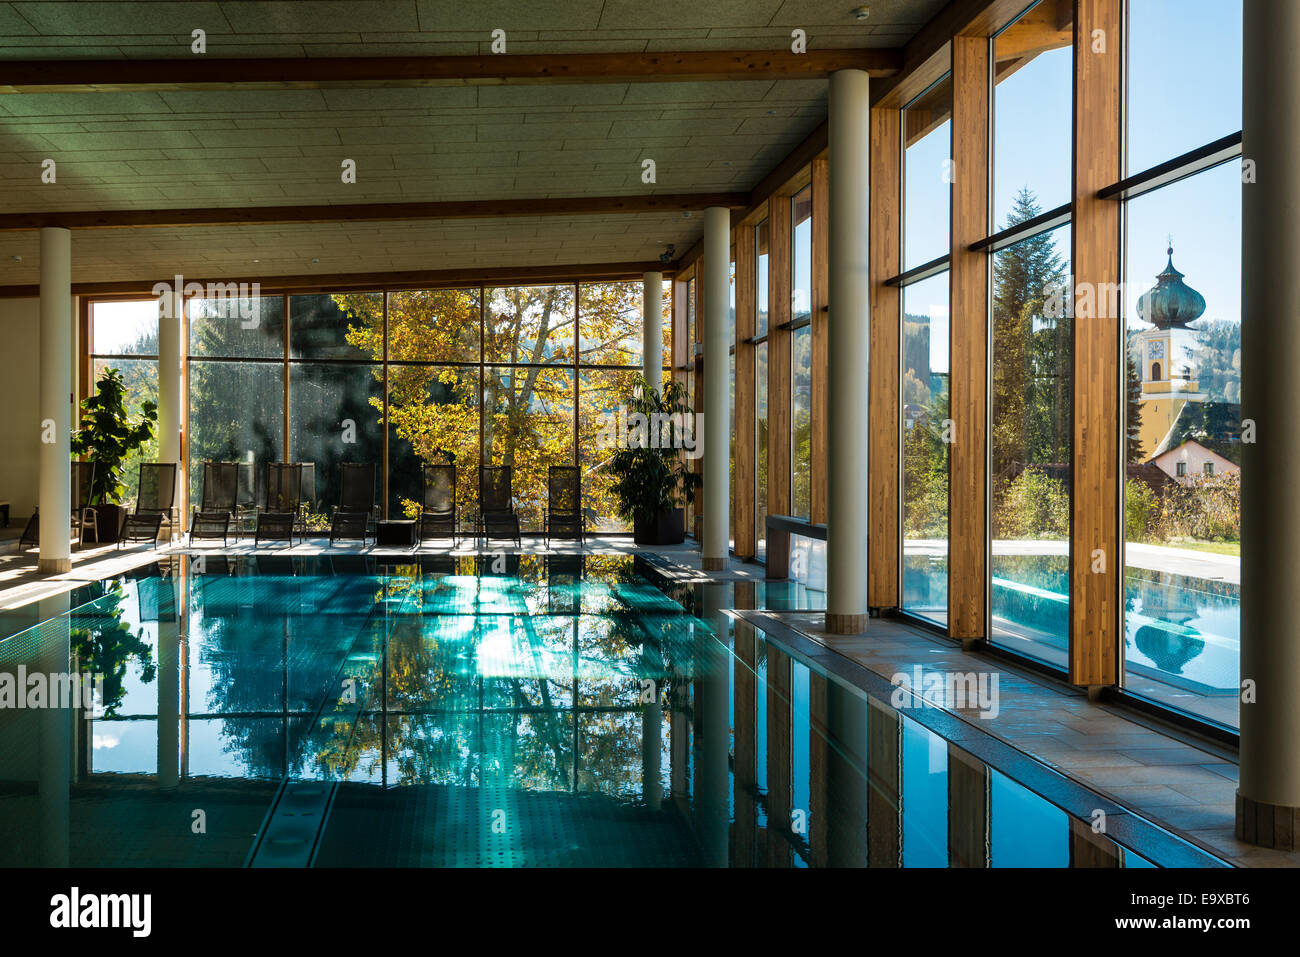 indoor swimming pool stock photos indoor swimming pool stock images alamy. Black Bedroom Furniture Sets. Home Design Ideas